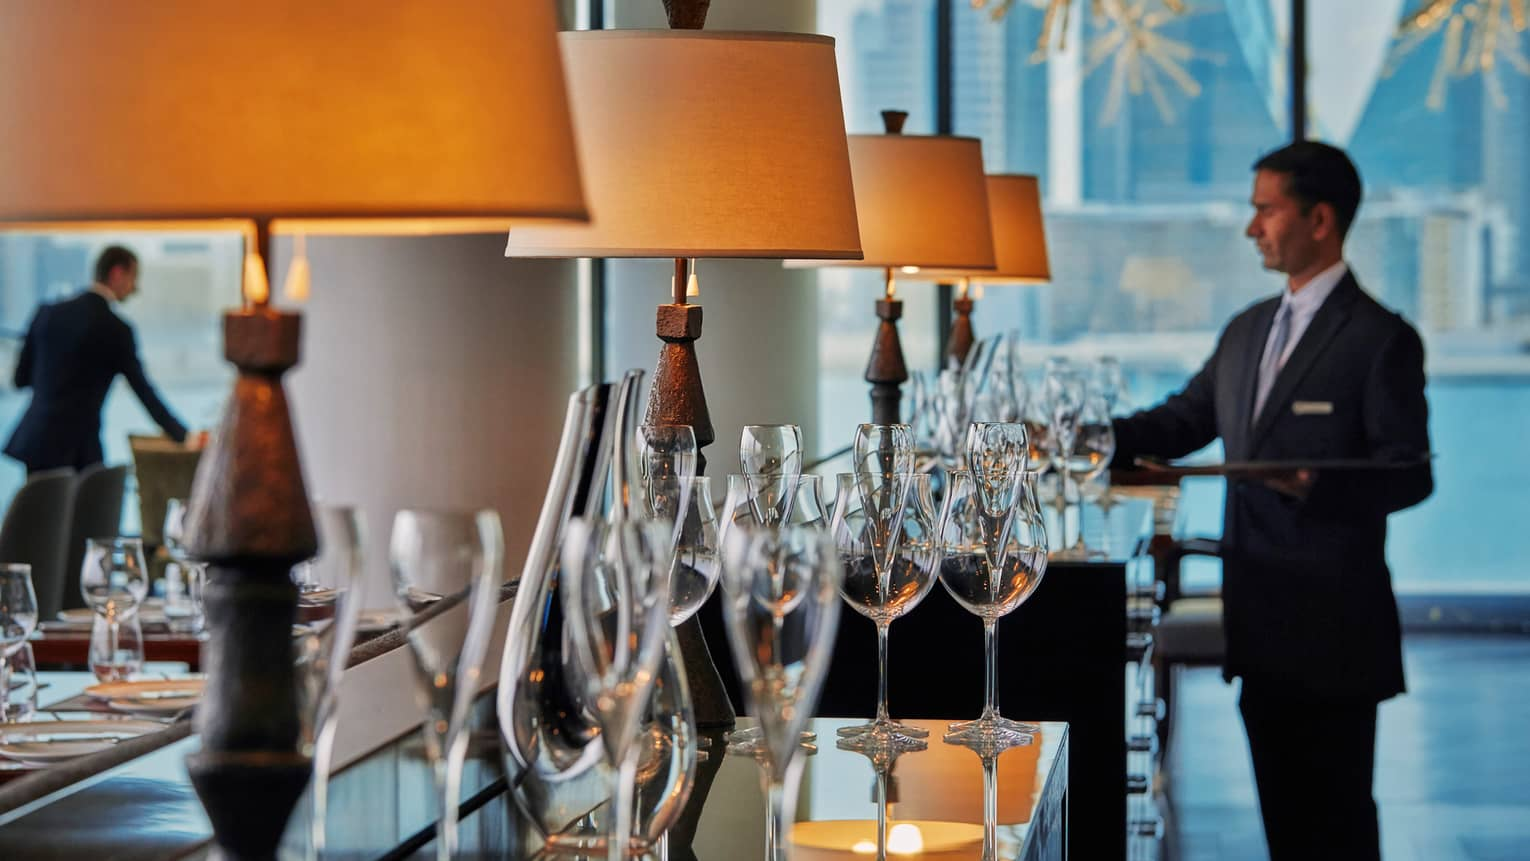 CUT by Wolfgang Puck restaurant sideboard lined with tall, shaded wooden lamps and champagne flutes, staff in background